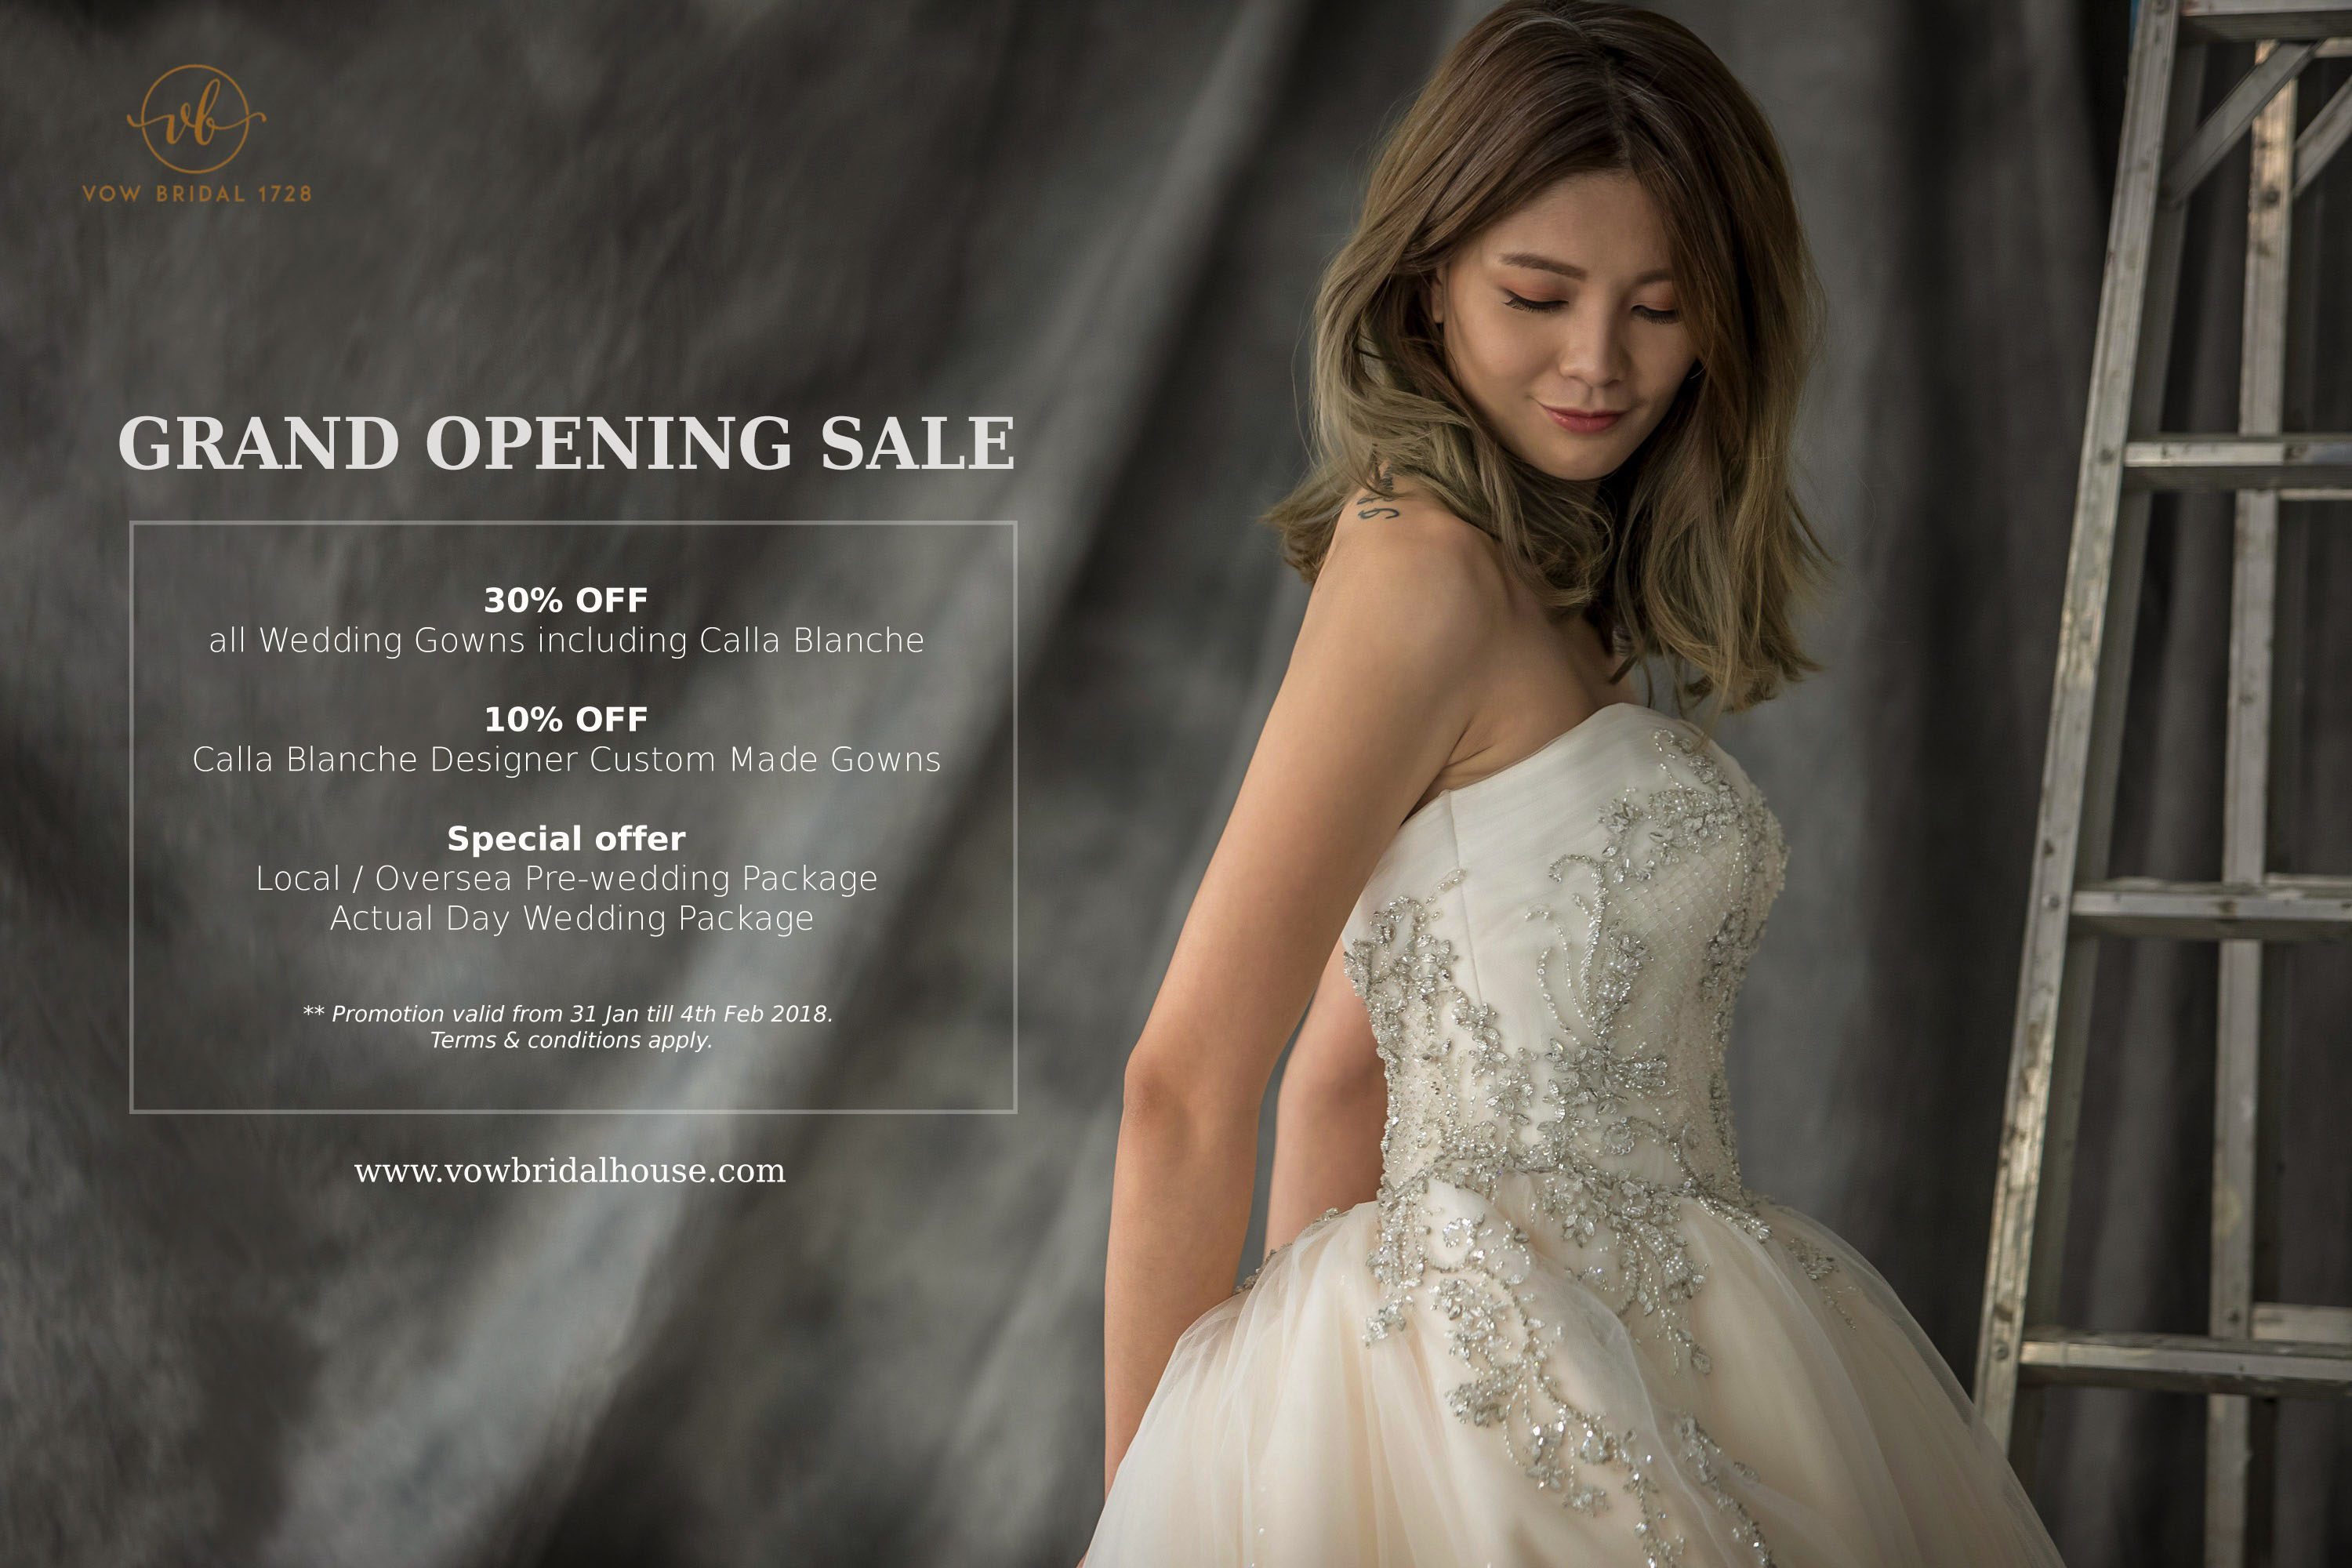 Vow Bridal Grand Opening Sale. Wedding Gown Rental Promotion | Vow ...